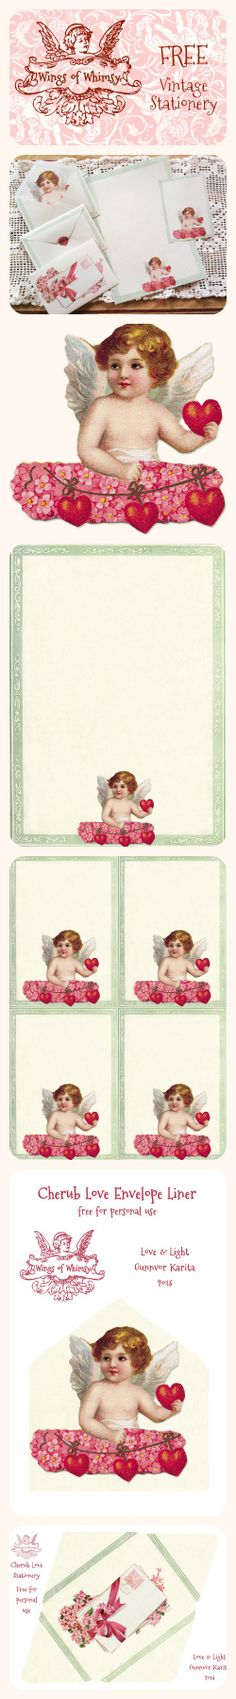 Wings of Whimsy: Vintage Stationery - free for personal use #vintage #ephemera #valentine #printable #freebie